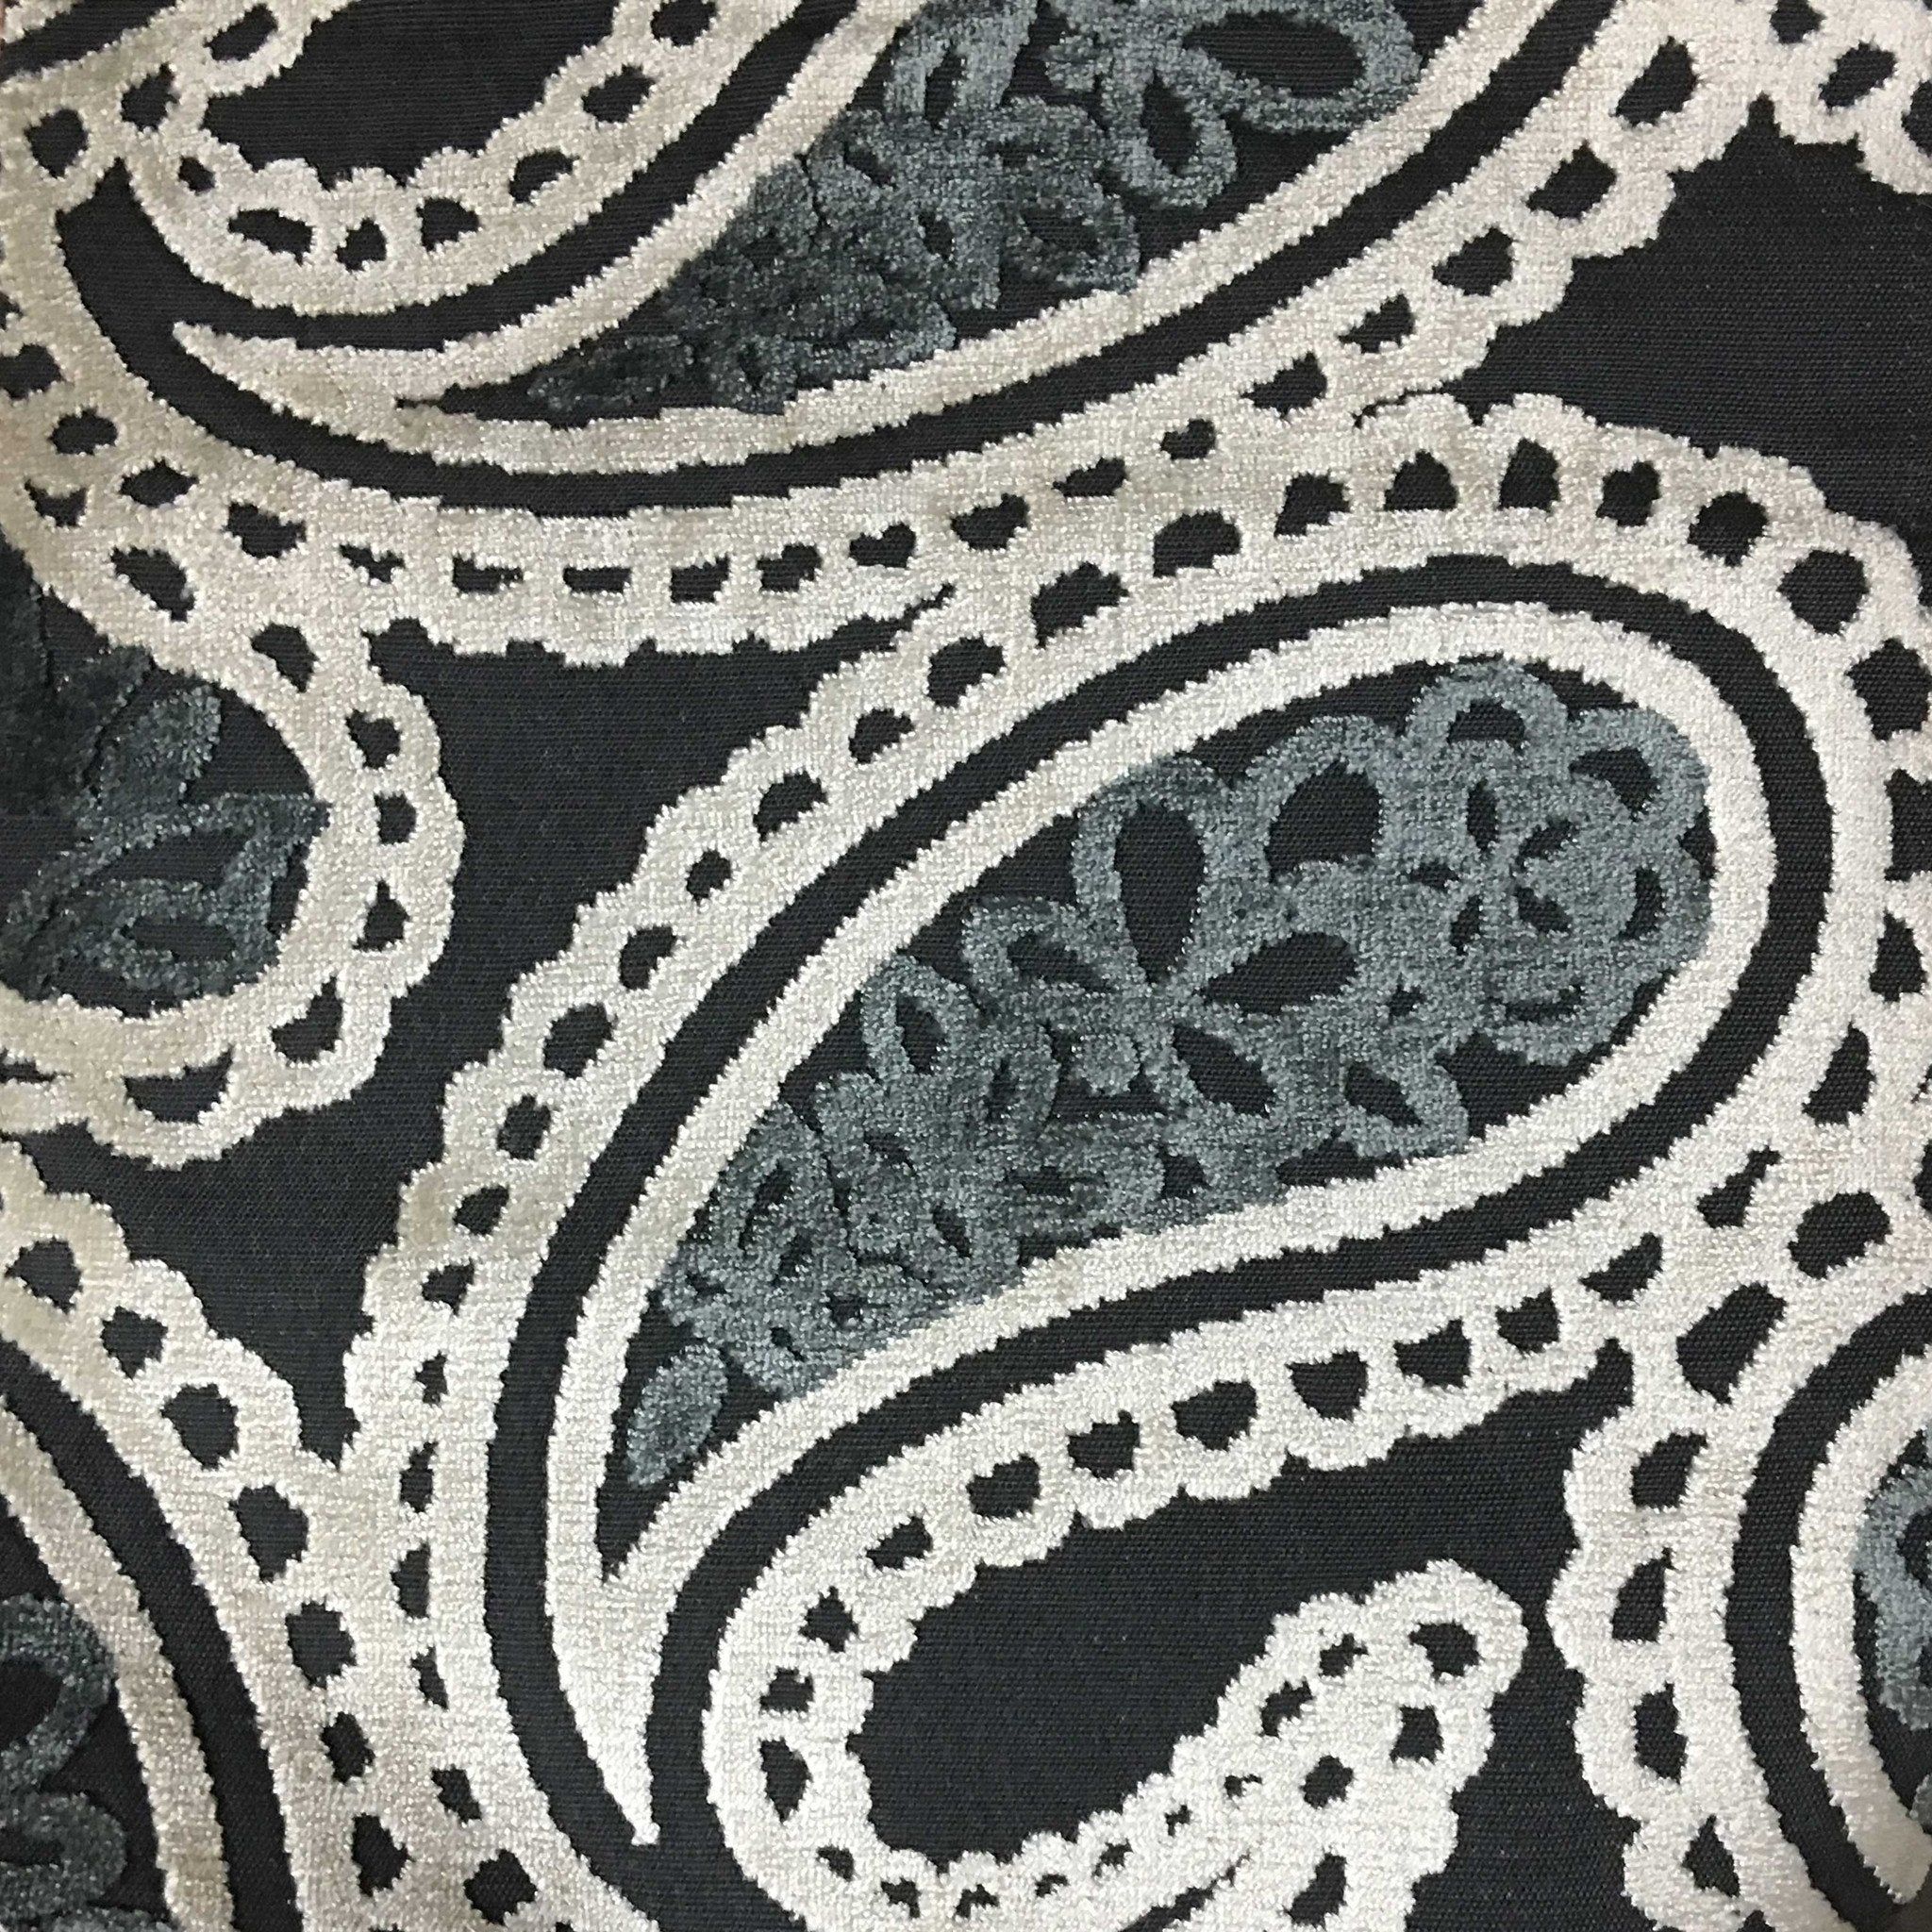 Home Decor Fabrics By The Yard a woven tweed upholstery fabric in black white and grey this durable home decor Victoria Bold Paisley Cut Velvet Upholstery Fabric By The Yard Available In 10 Colors